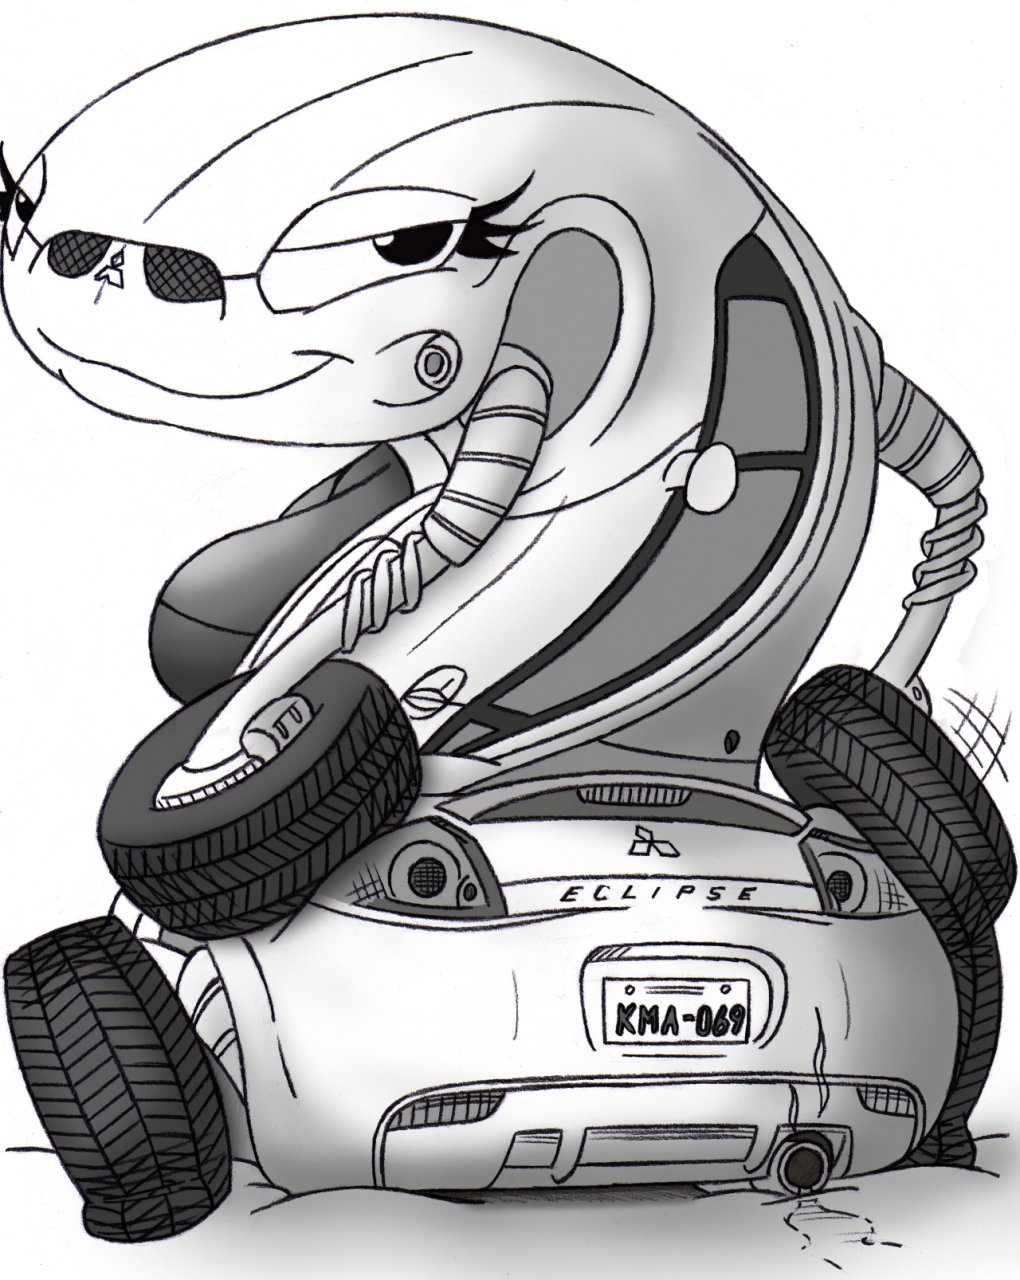 Mitsubishi Eclipse Drawing At Free For Personal Fuse Box Car Truck Parts Ebay 1020x1280 Antro By Half Dude